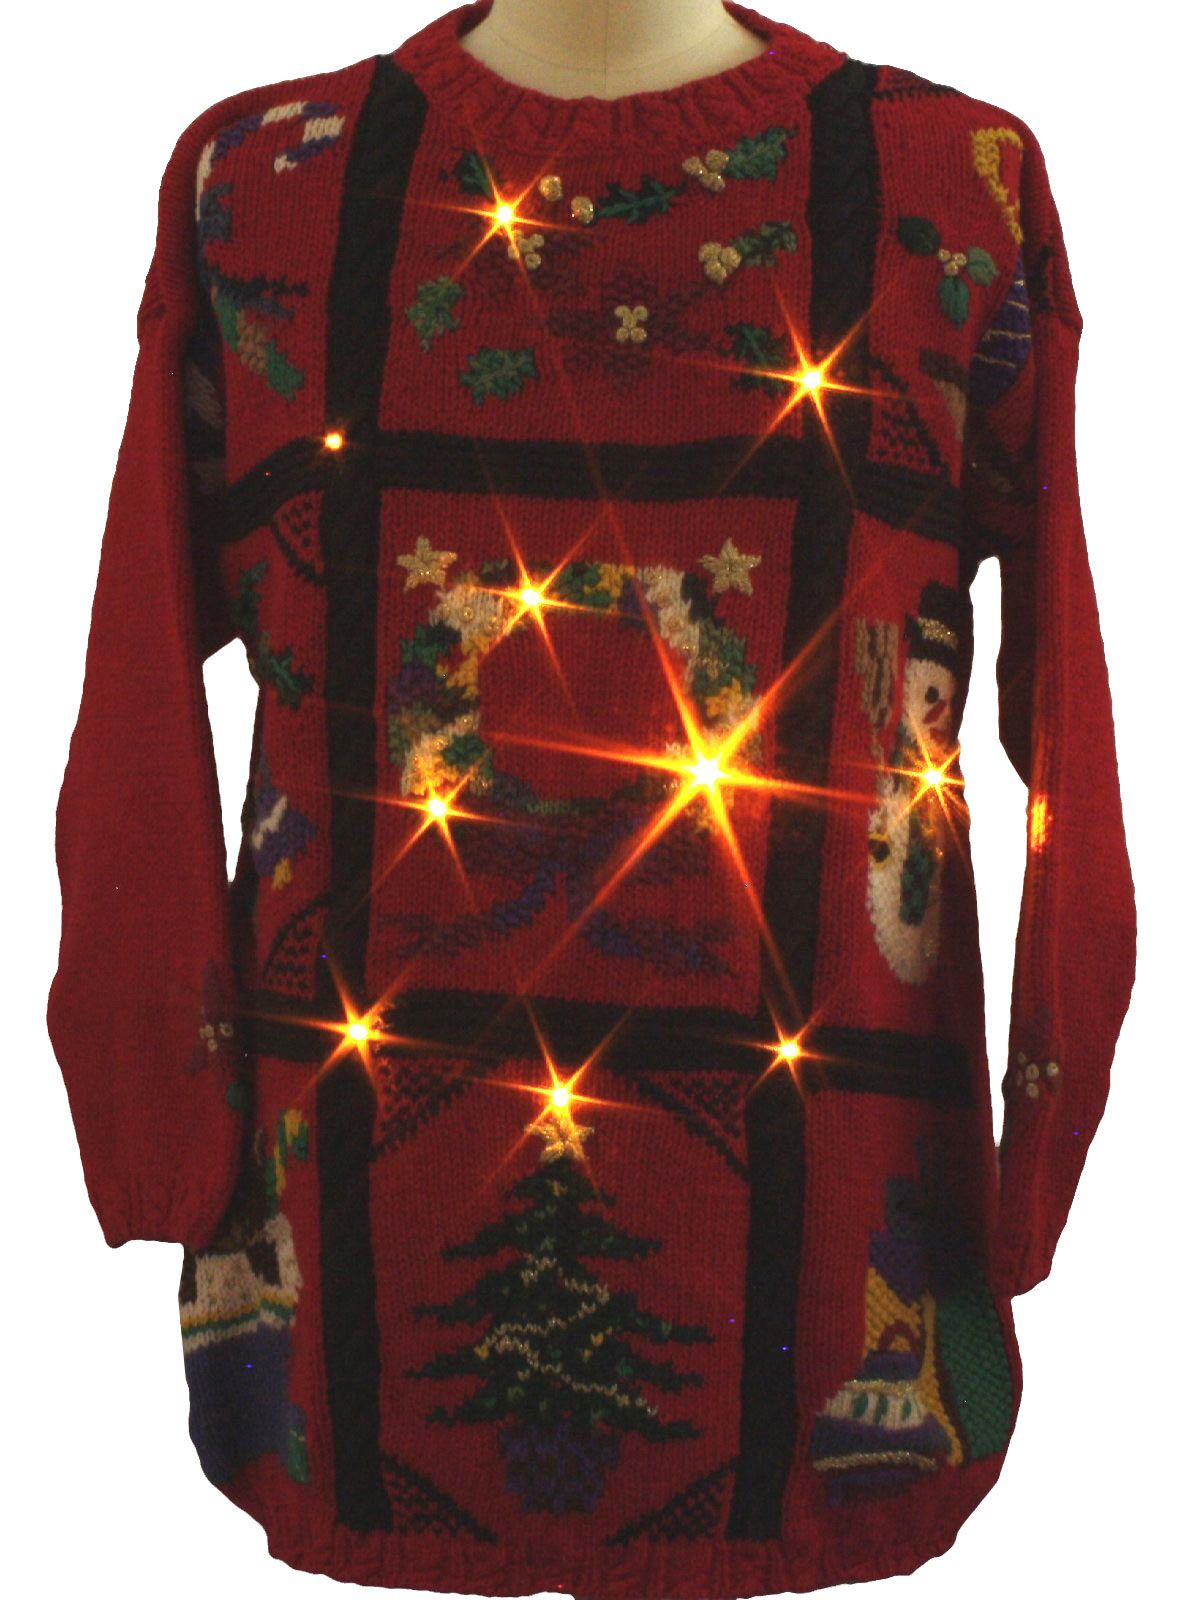 015843ee086 Lightup Ugly Christmas Sweater  -Honors Plus Size- Unisex red ...